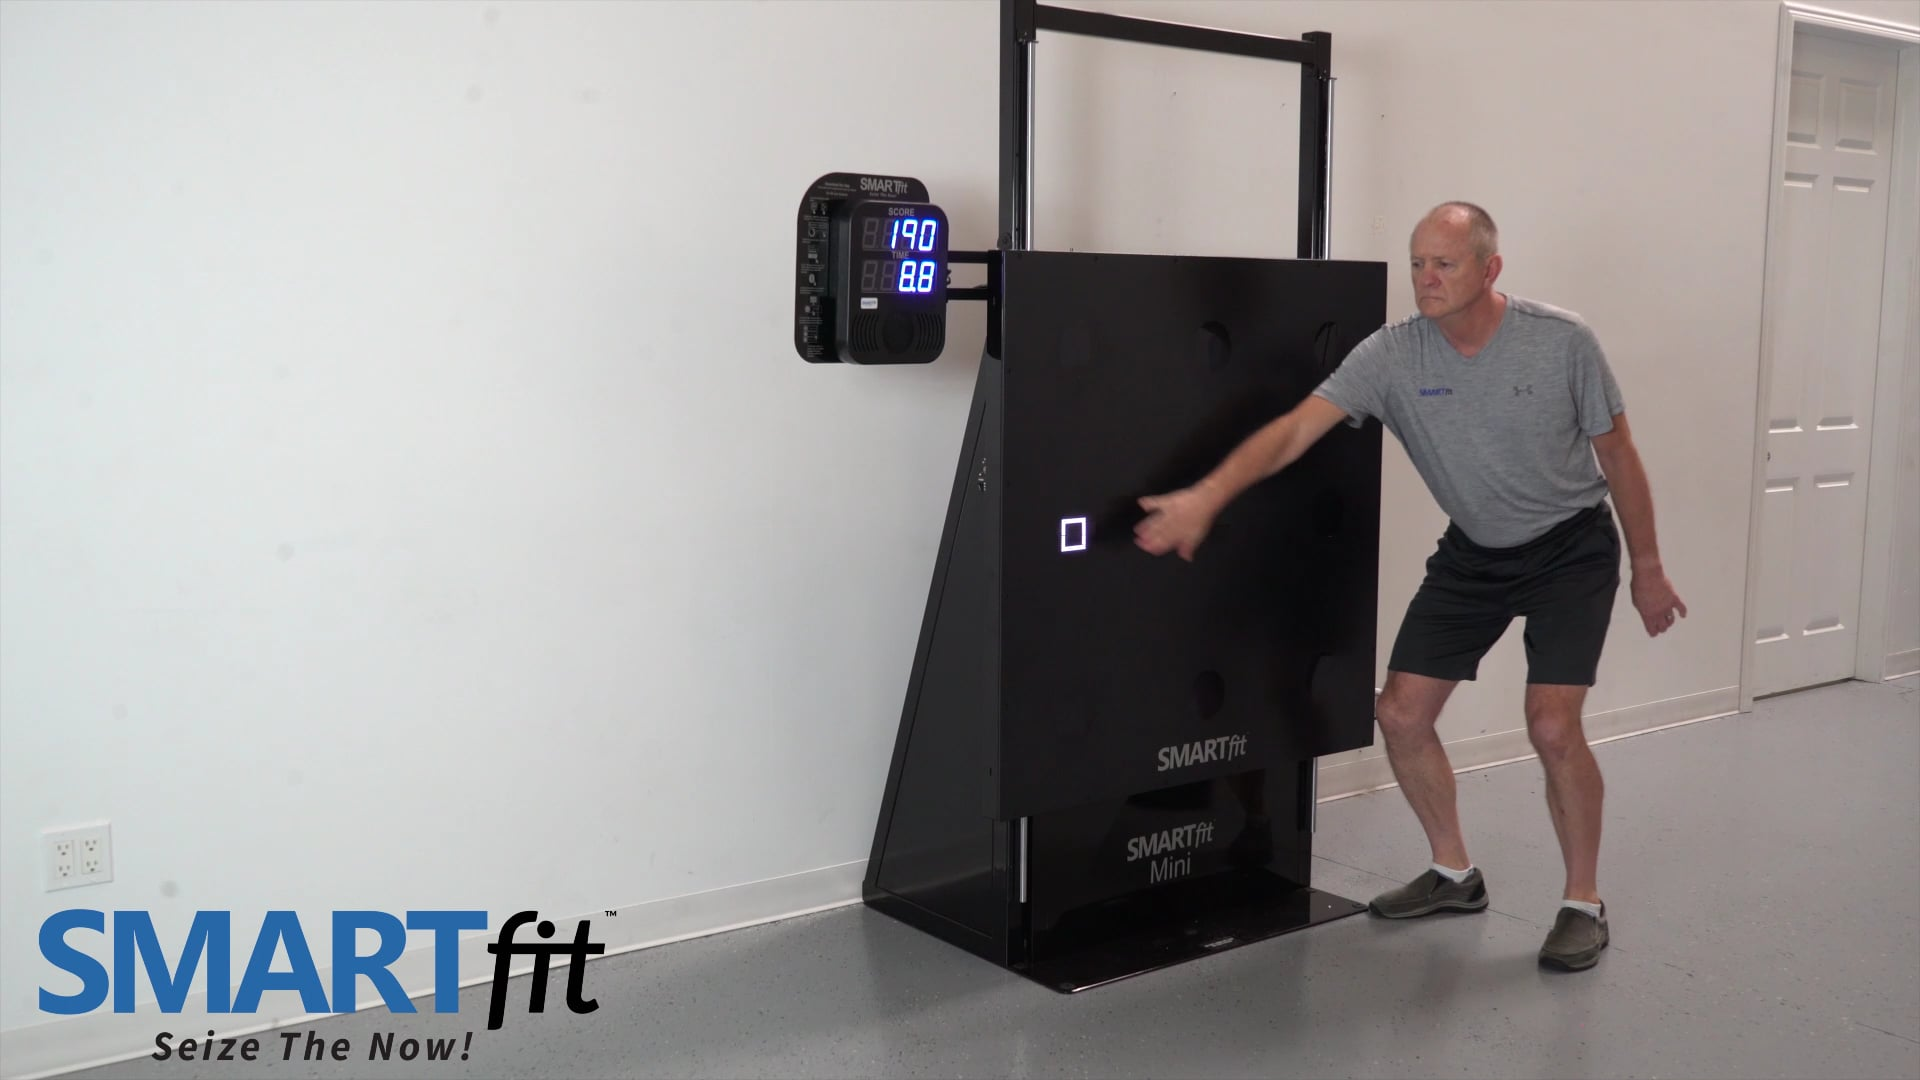 Activity examples with SMARTfit Mini